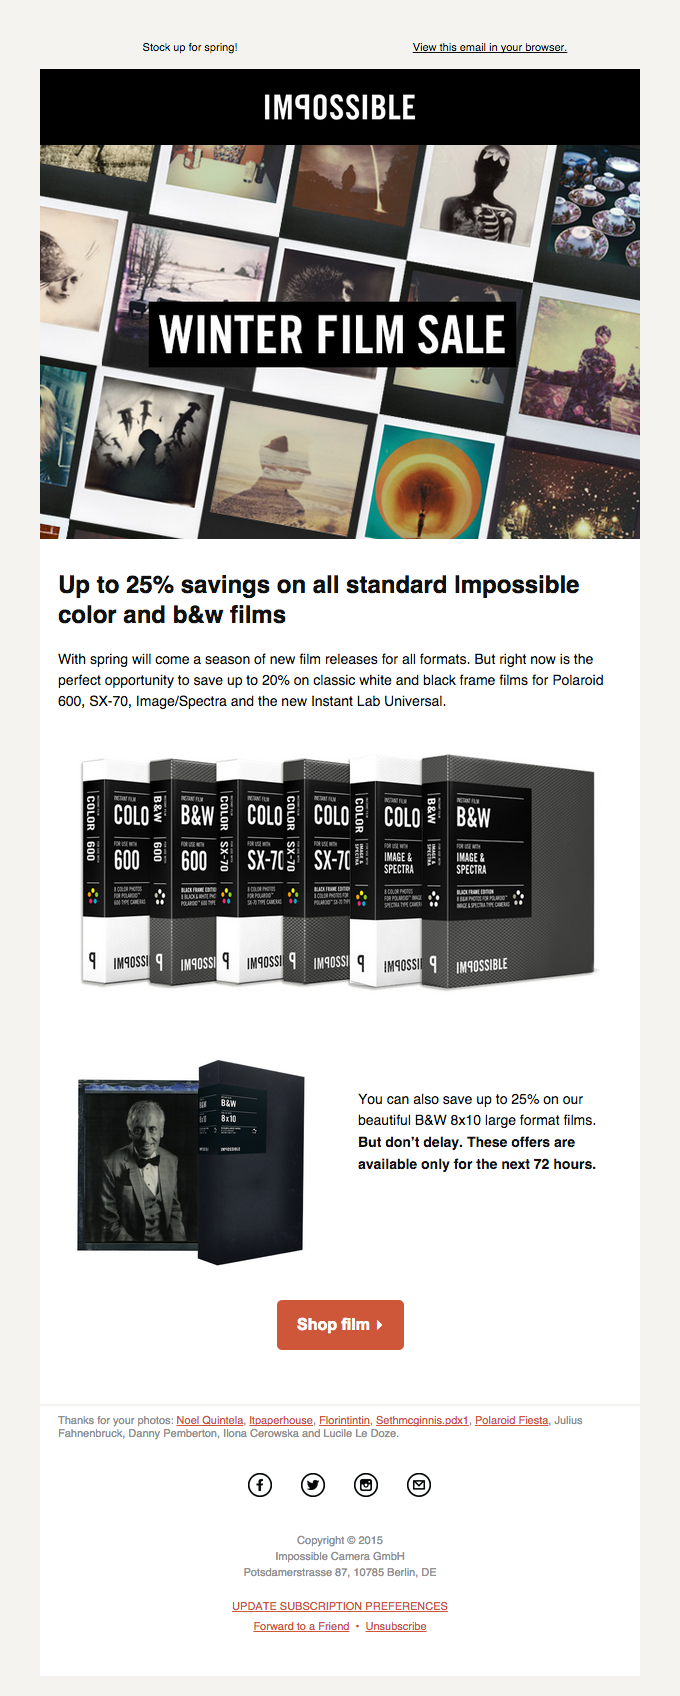 End of season sale of all standard Color & B&W films